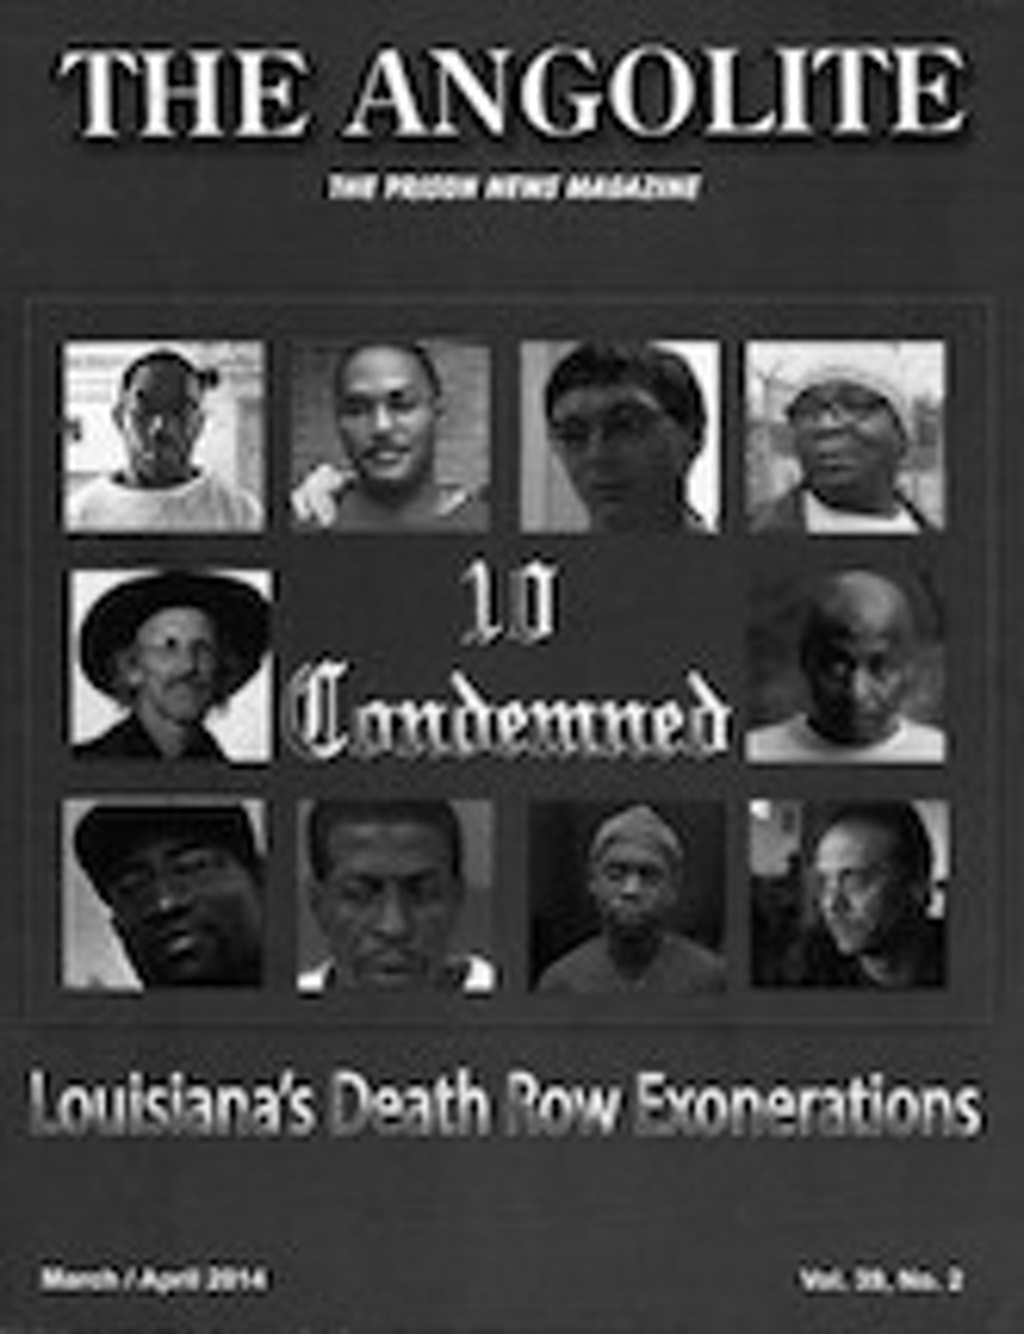 The Angolite Features Louisiana's Death Row Exonerees